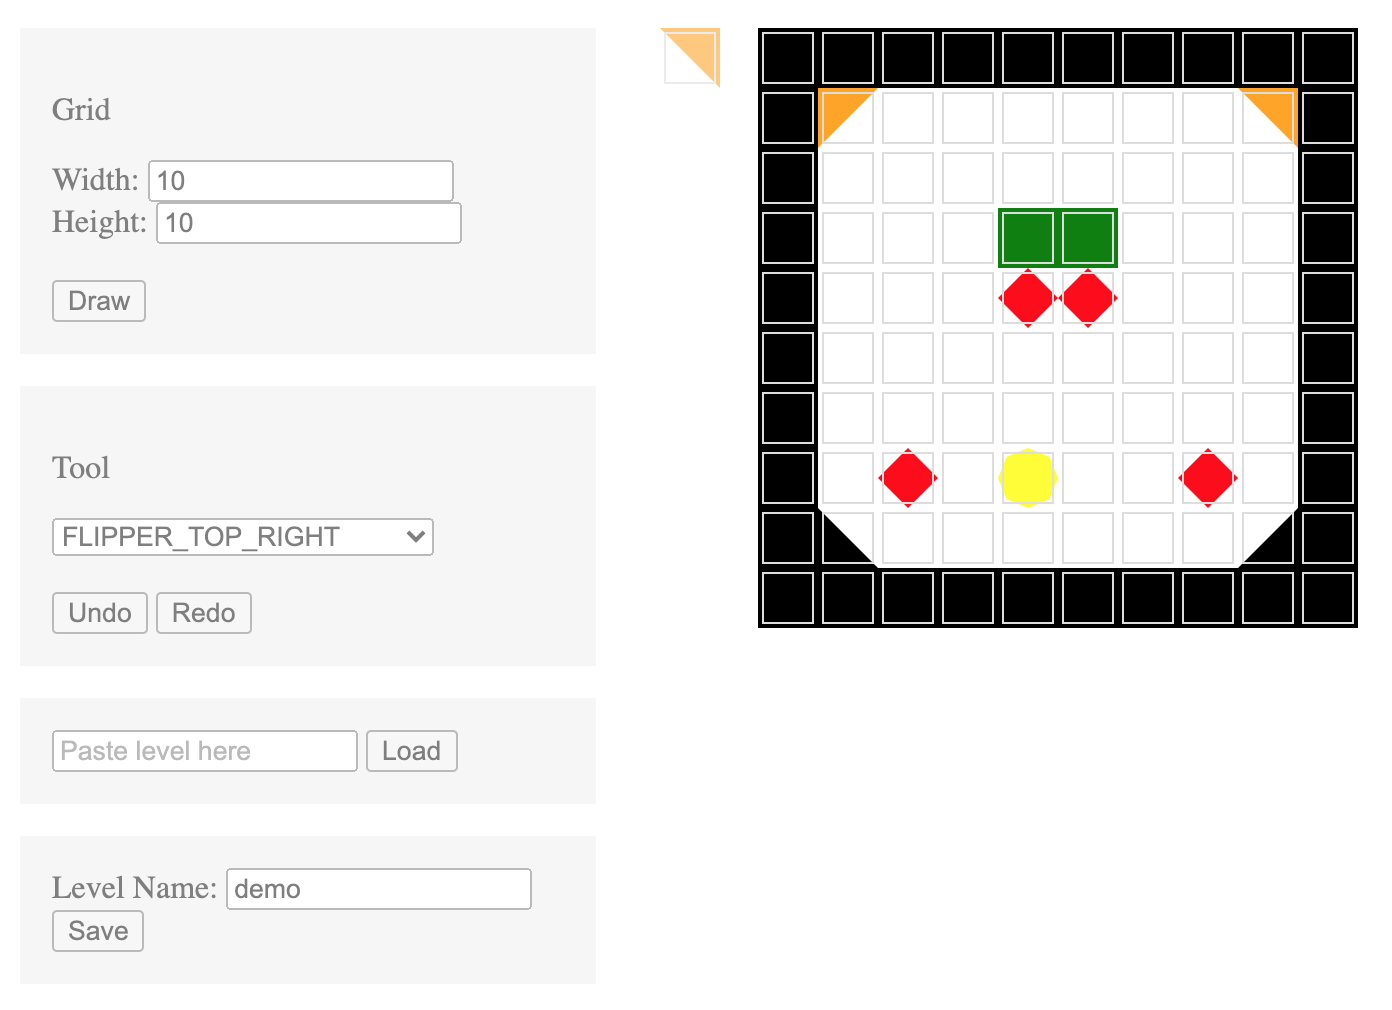 A screenshot of the tile-based level editor for the game